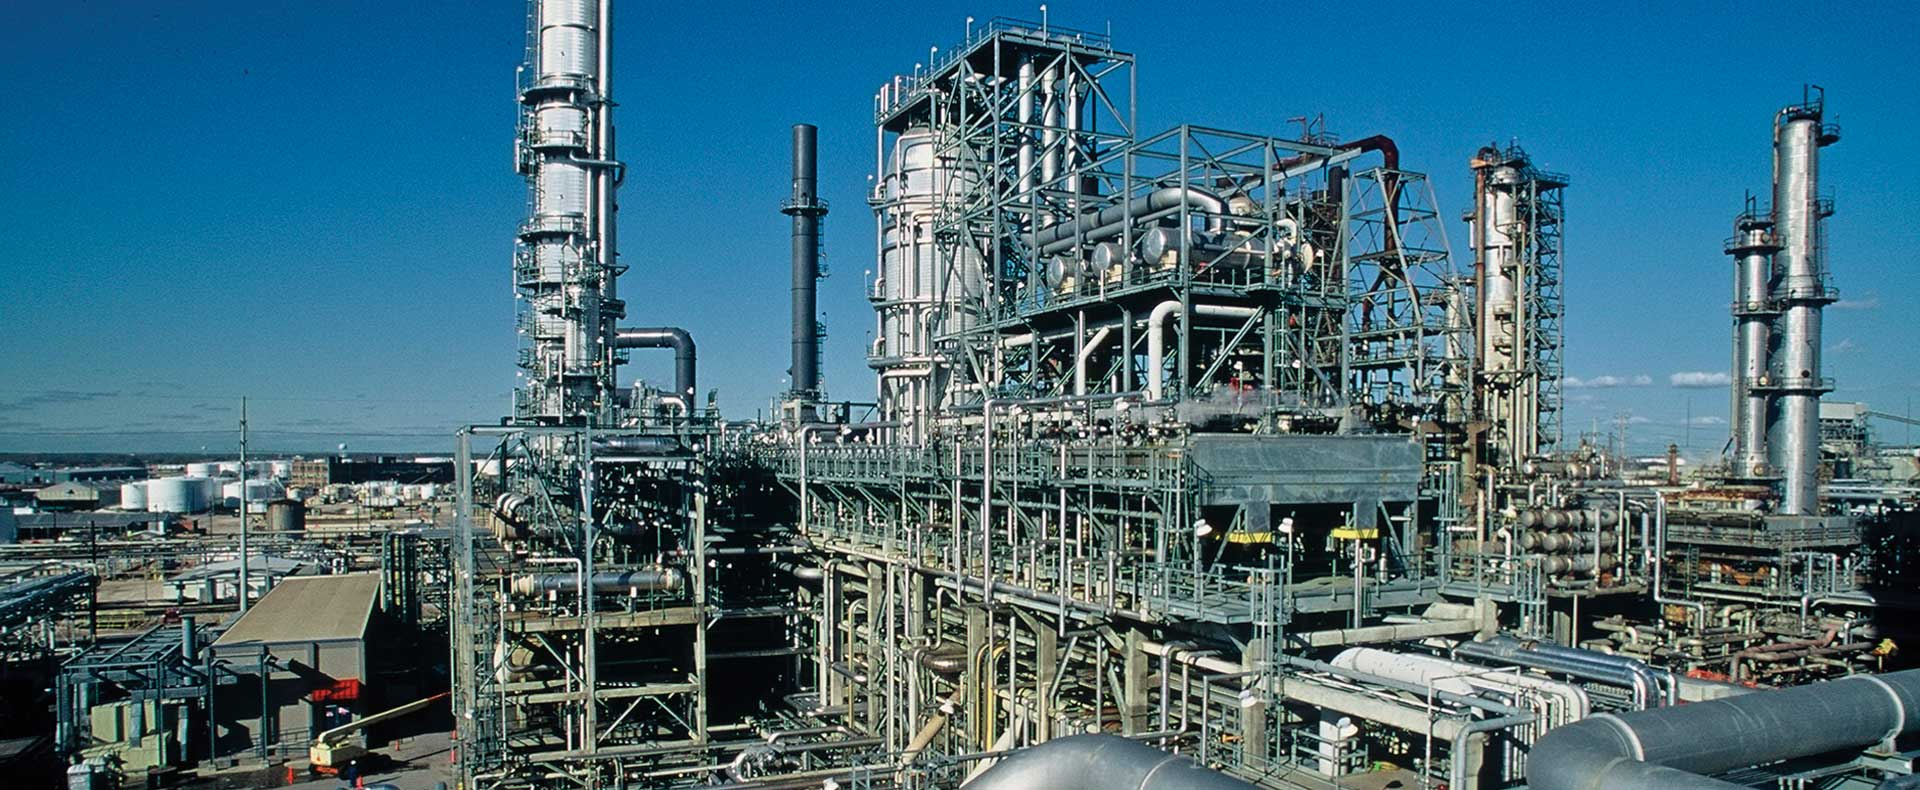 Fluor awarded contract for world's largest propylene oxide, tertiary